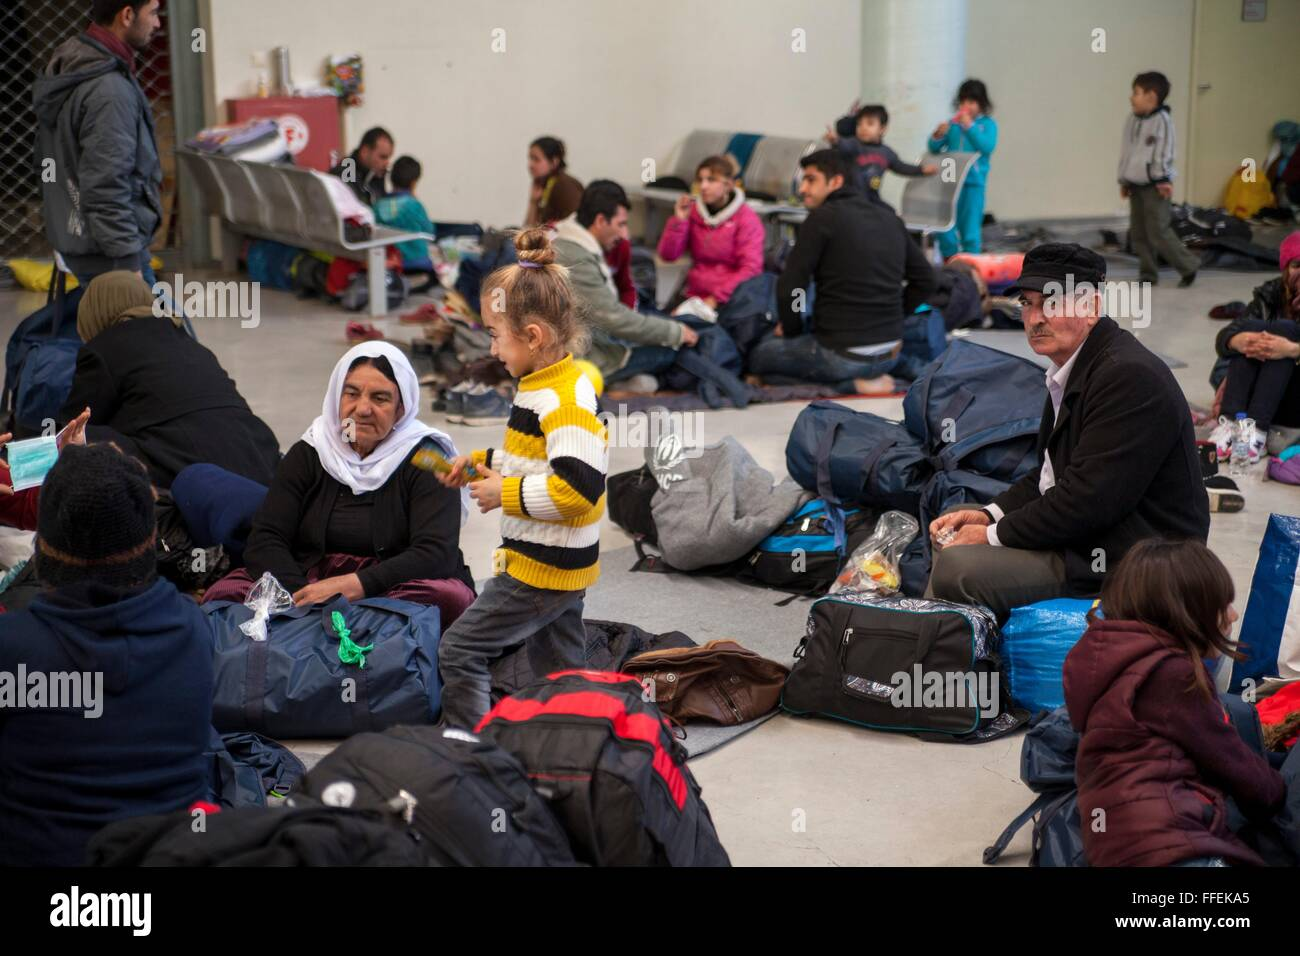 Refguees wait for days within building at habour of Pireaus. Despite difficulties in Greece, families hope to continue - Stock Image